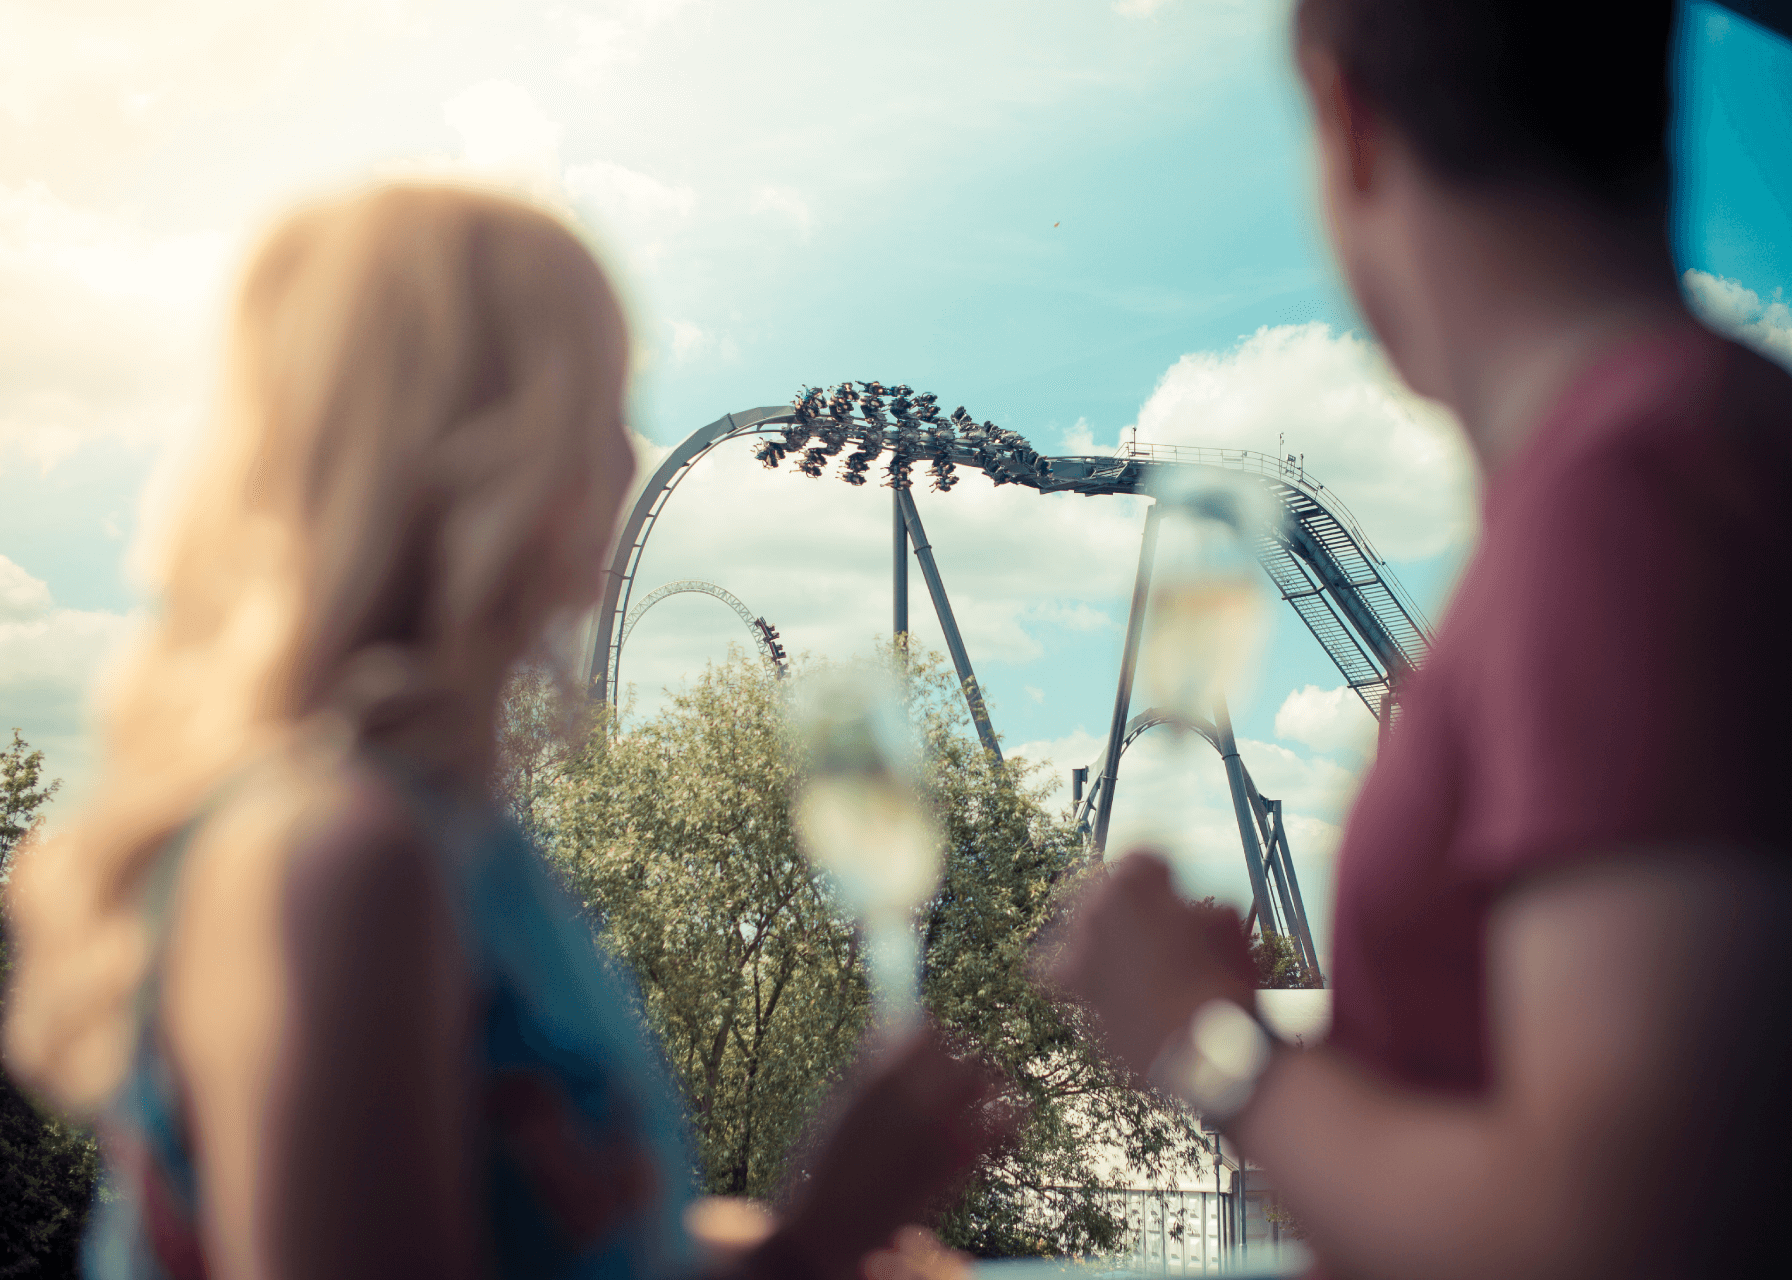 Thorpe Shark Cabins, couple looking at The Swarm rollercoaster